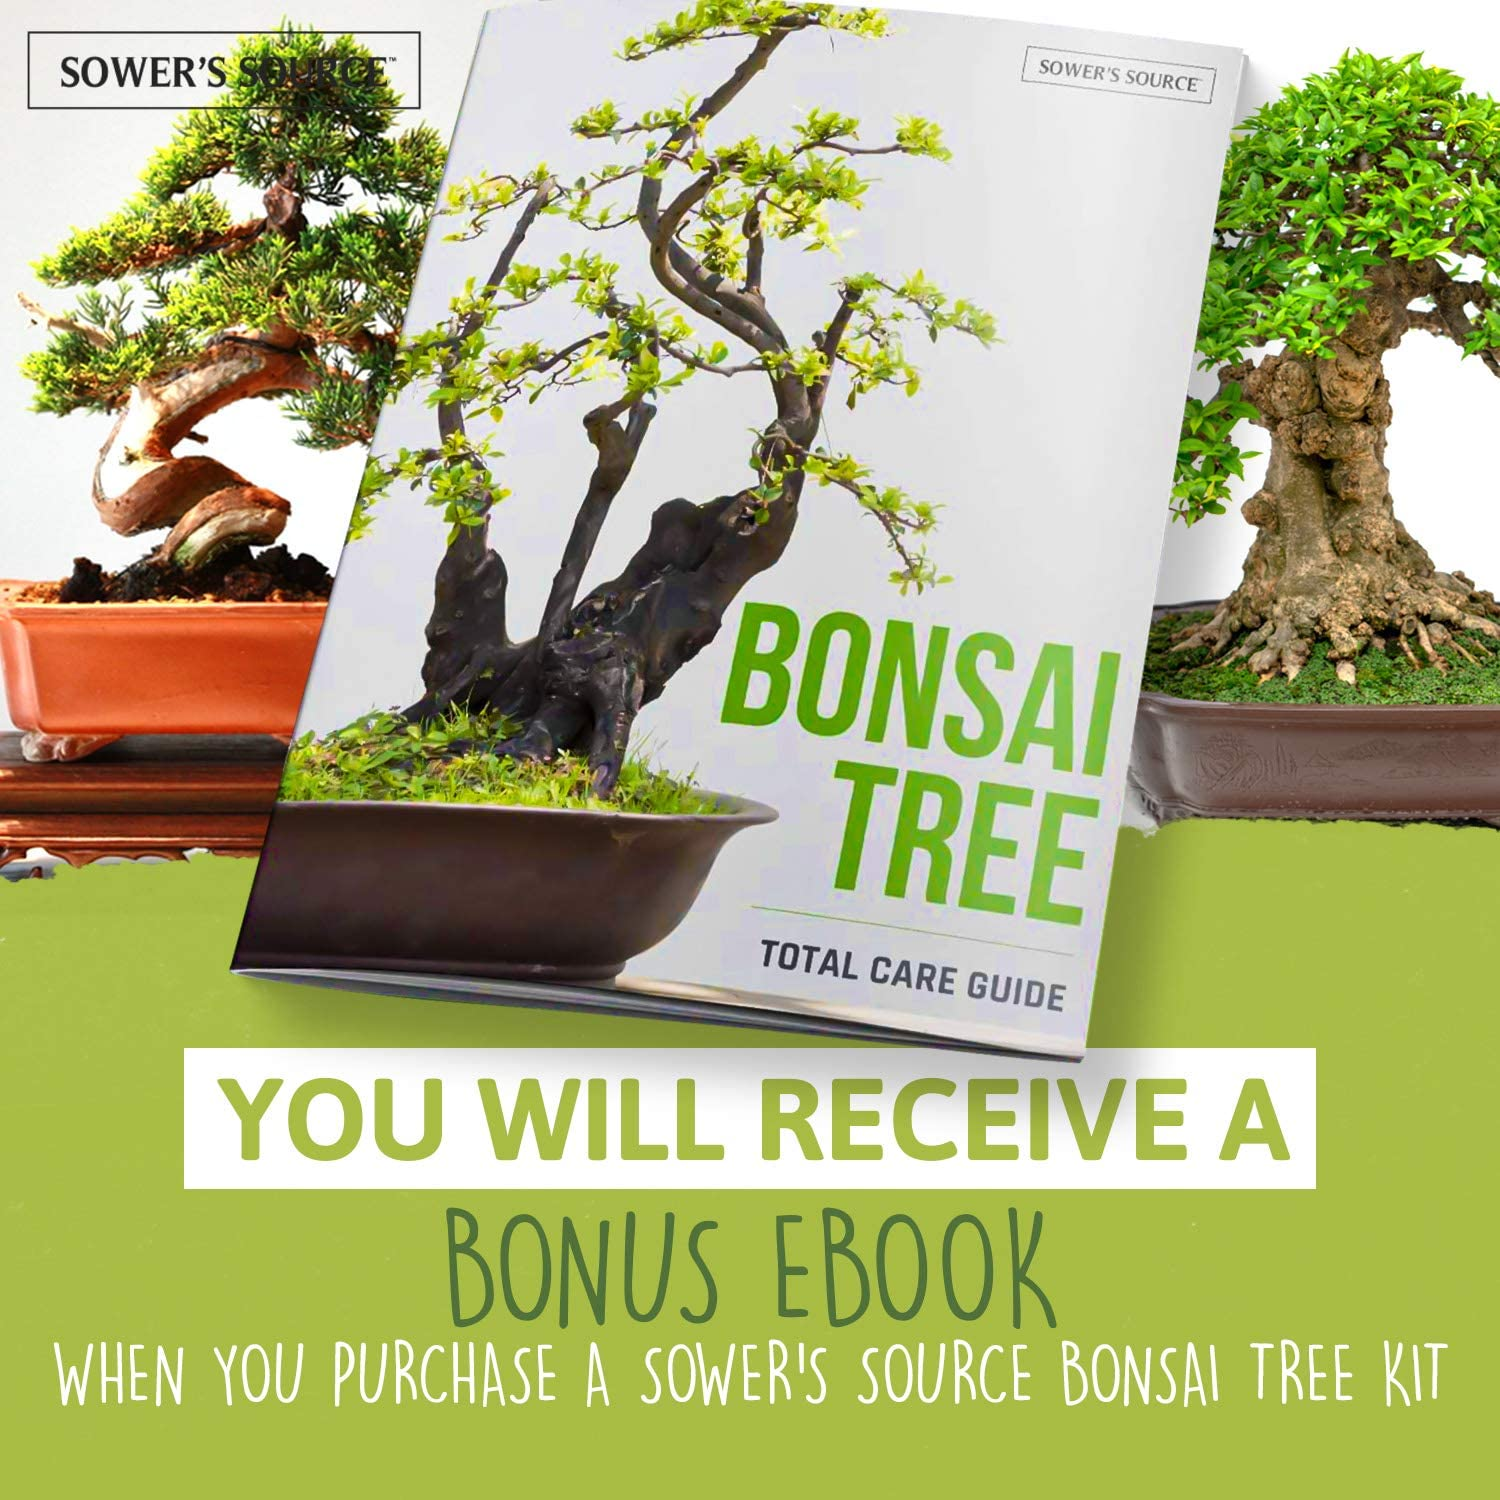 Amazon Com Bonsai Tree Starter Kit Indoor And Outdoor Beginner Seed Kit Soil Mix Biodegradable Planter Pots Plant Markers Growing Guide Grows 5 Unique Trees Garden Outdoor